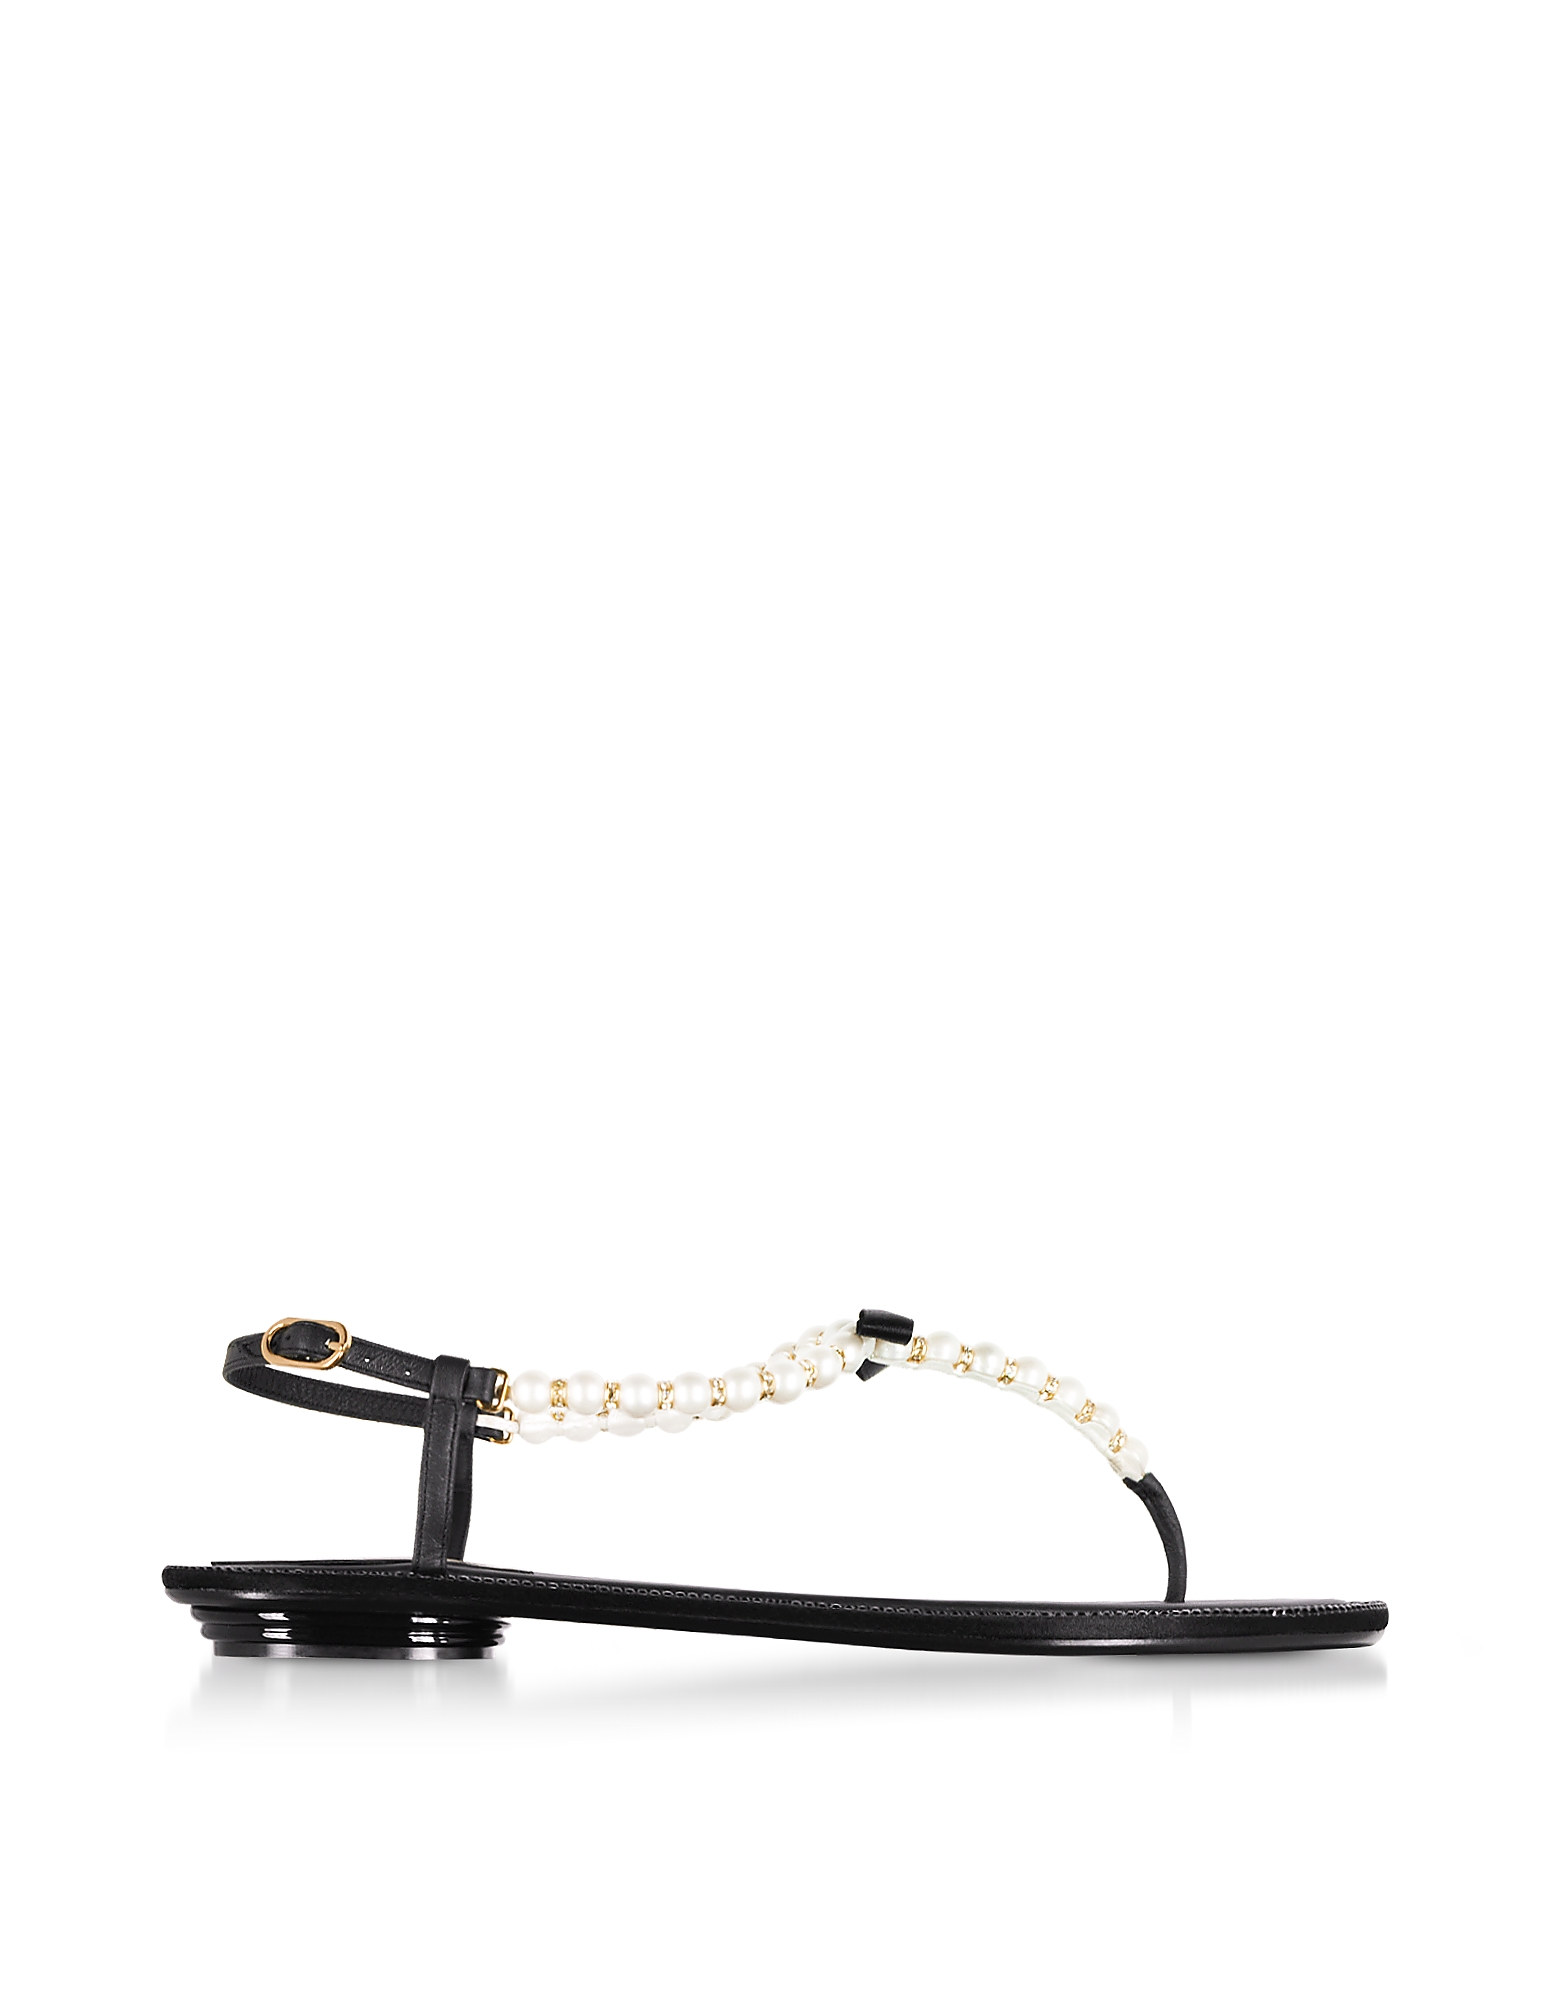 Rene Caovilla Shoes, Eliza Black Leather Sandals w/Pearls